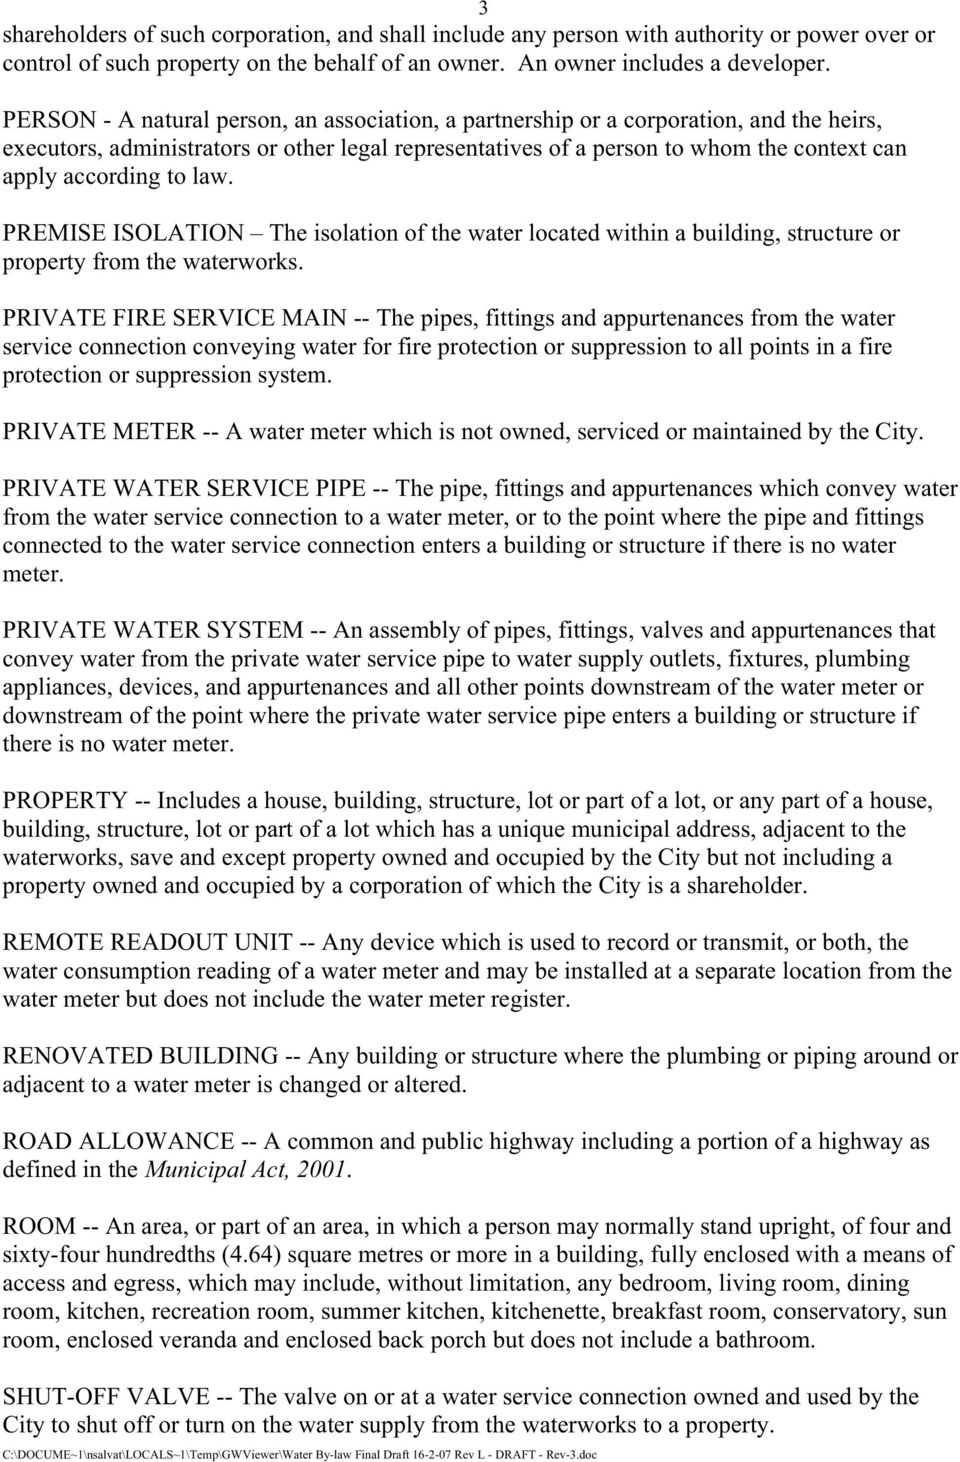 Proposed New City of Toronto Water Supply By-law CONTENTS